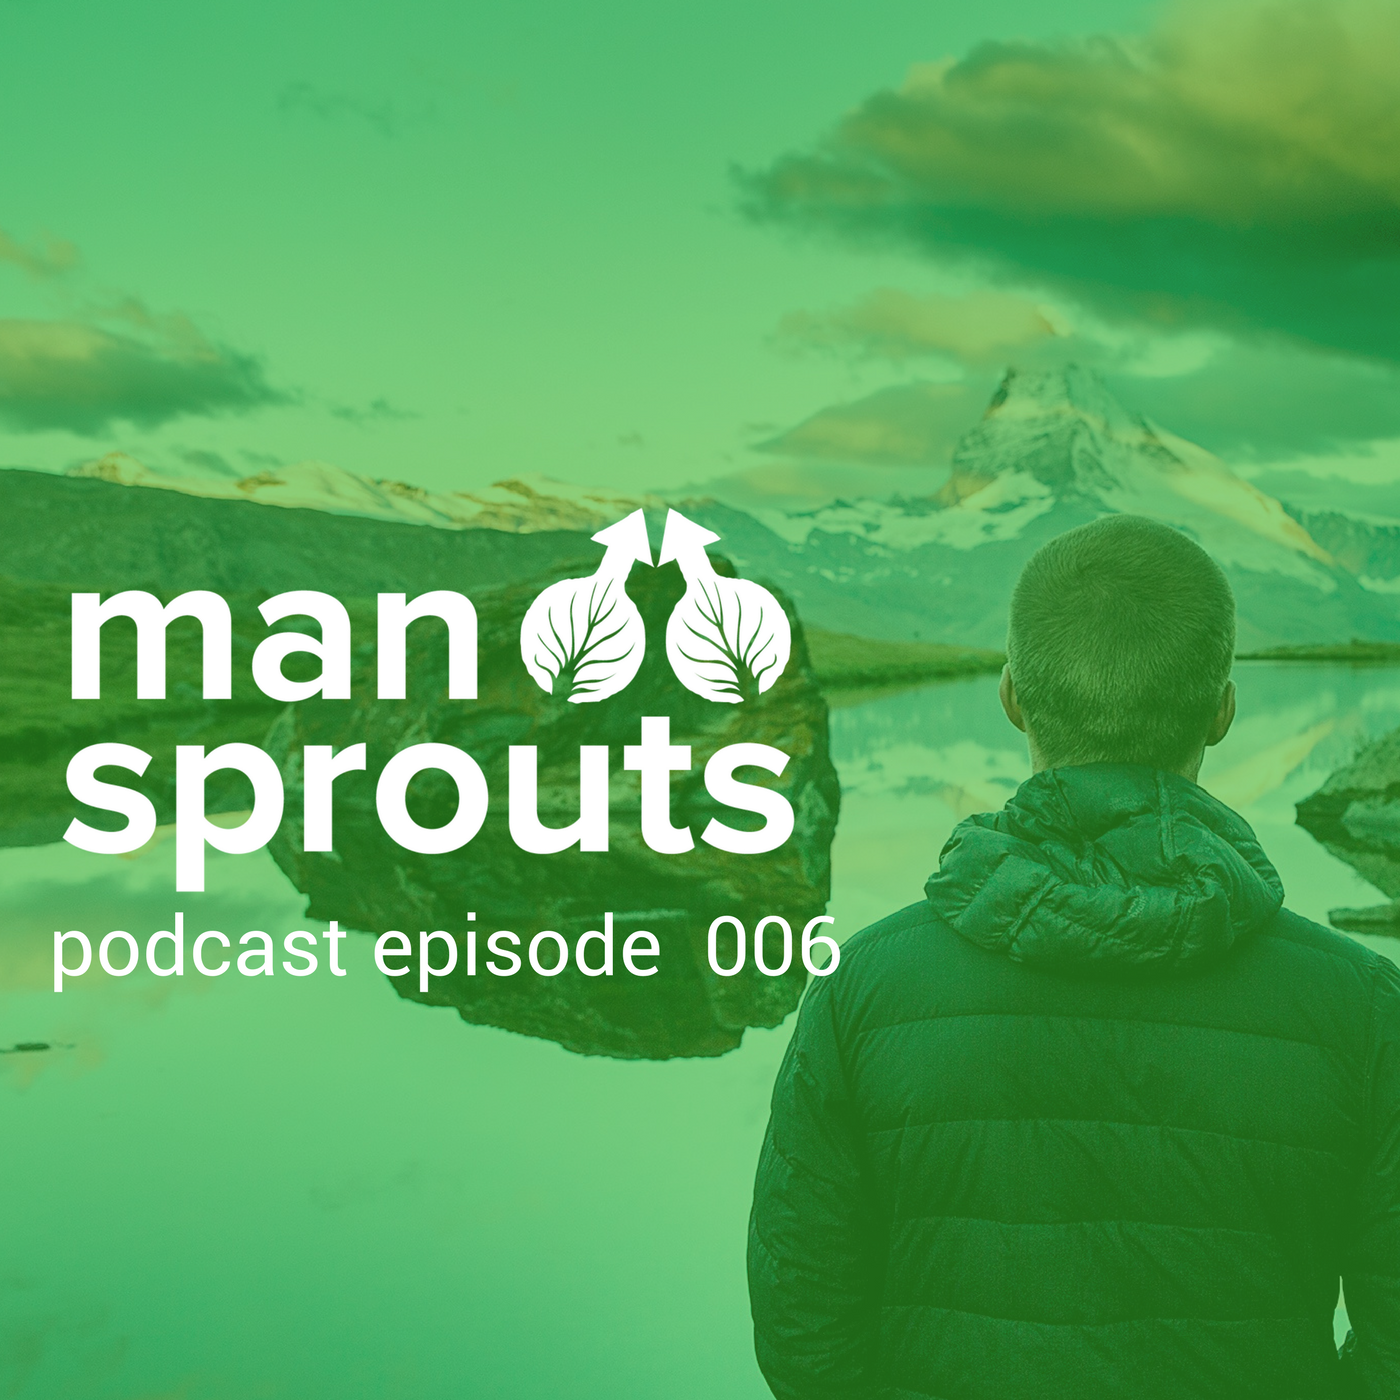 episode 6 of the man sprouts podcast - eating and health